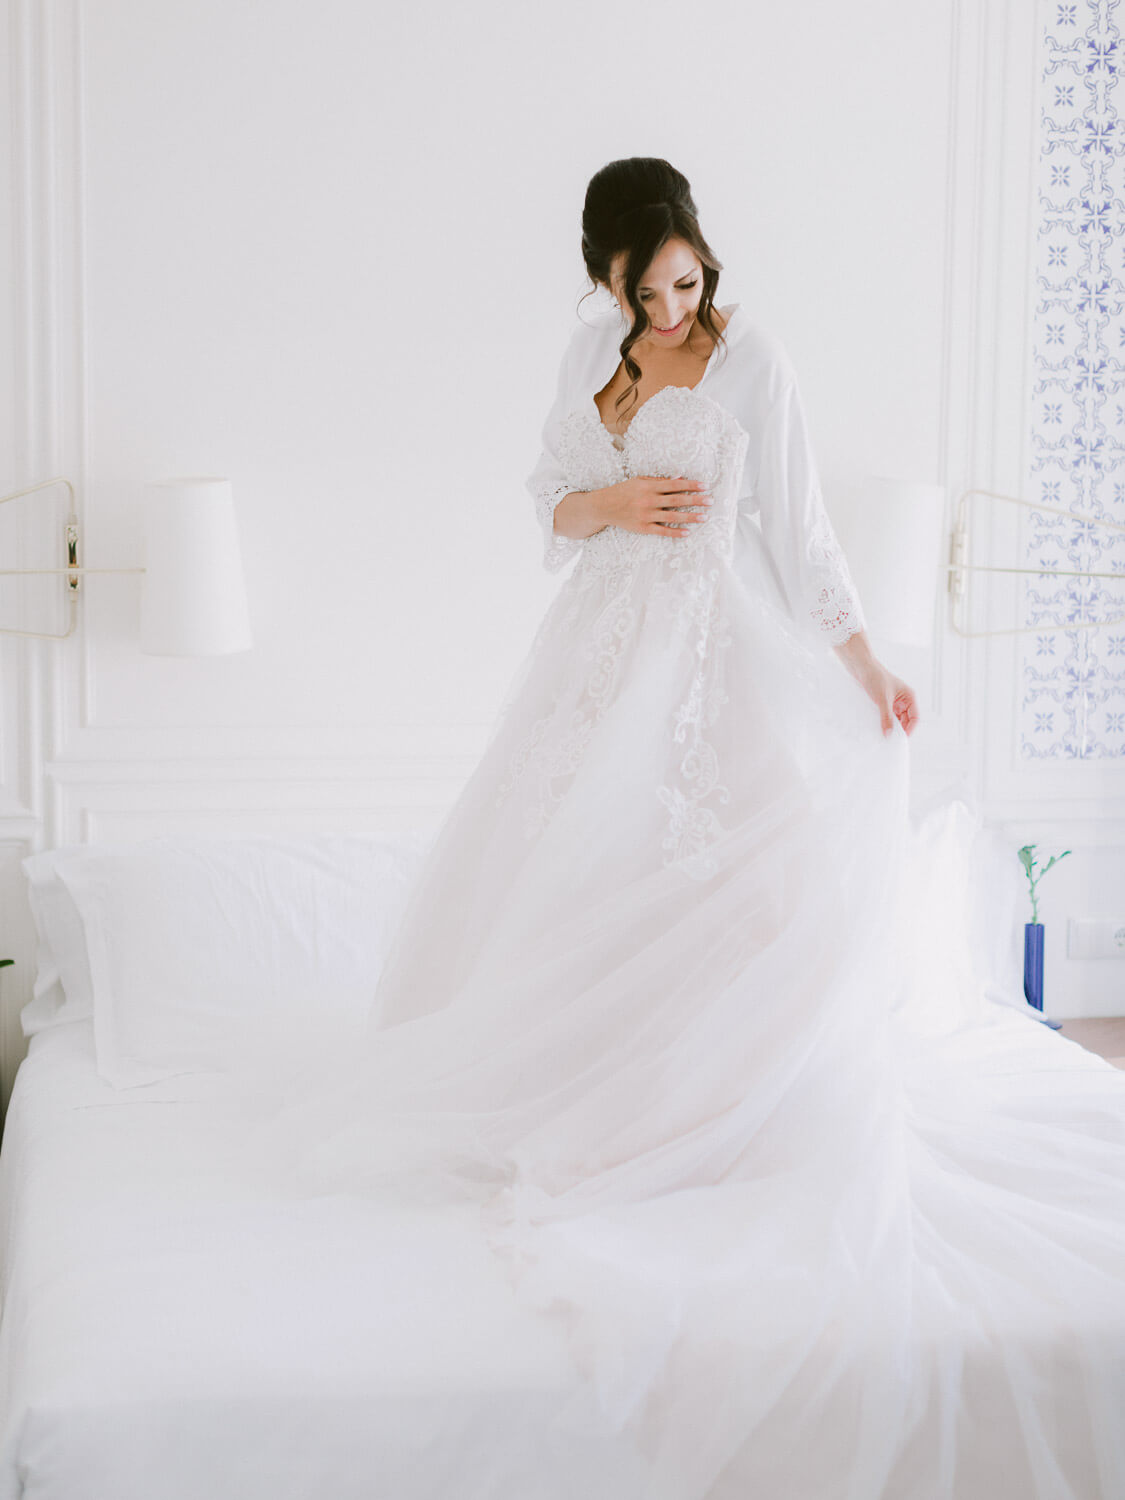 blissful bride staging with her bridal gown on a wedding in Sintra by Portugal Wedding Photographer